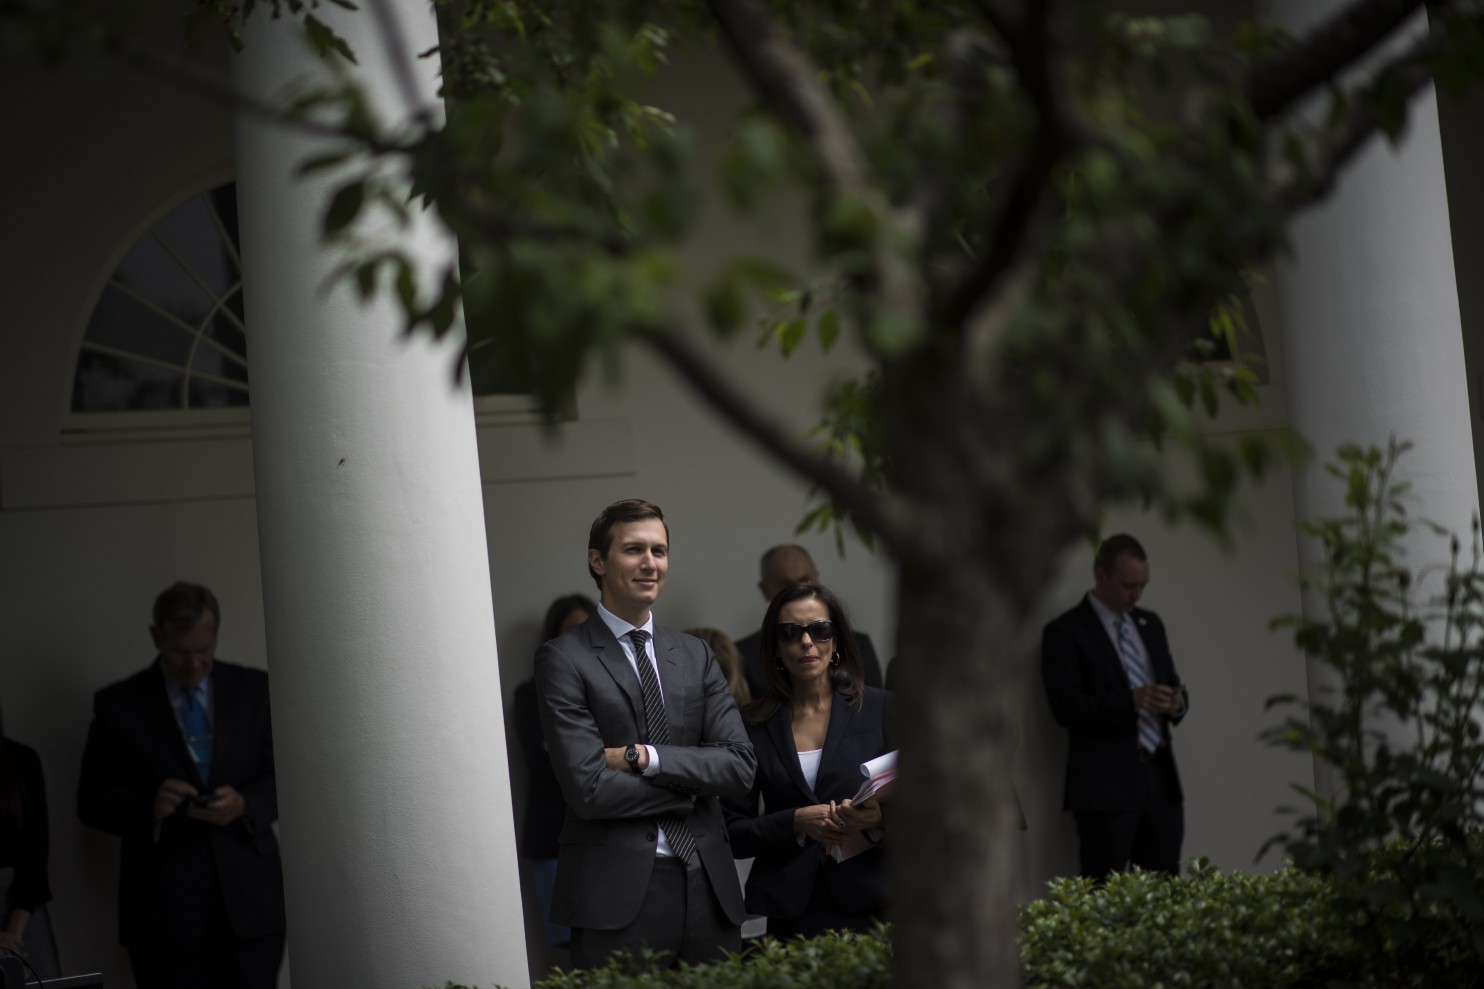 White House senior adviser Jared Kushner listens as President Trump speaks